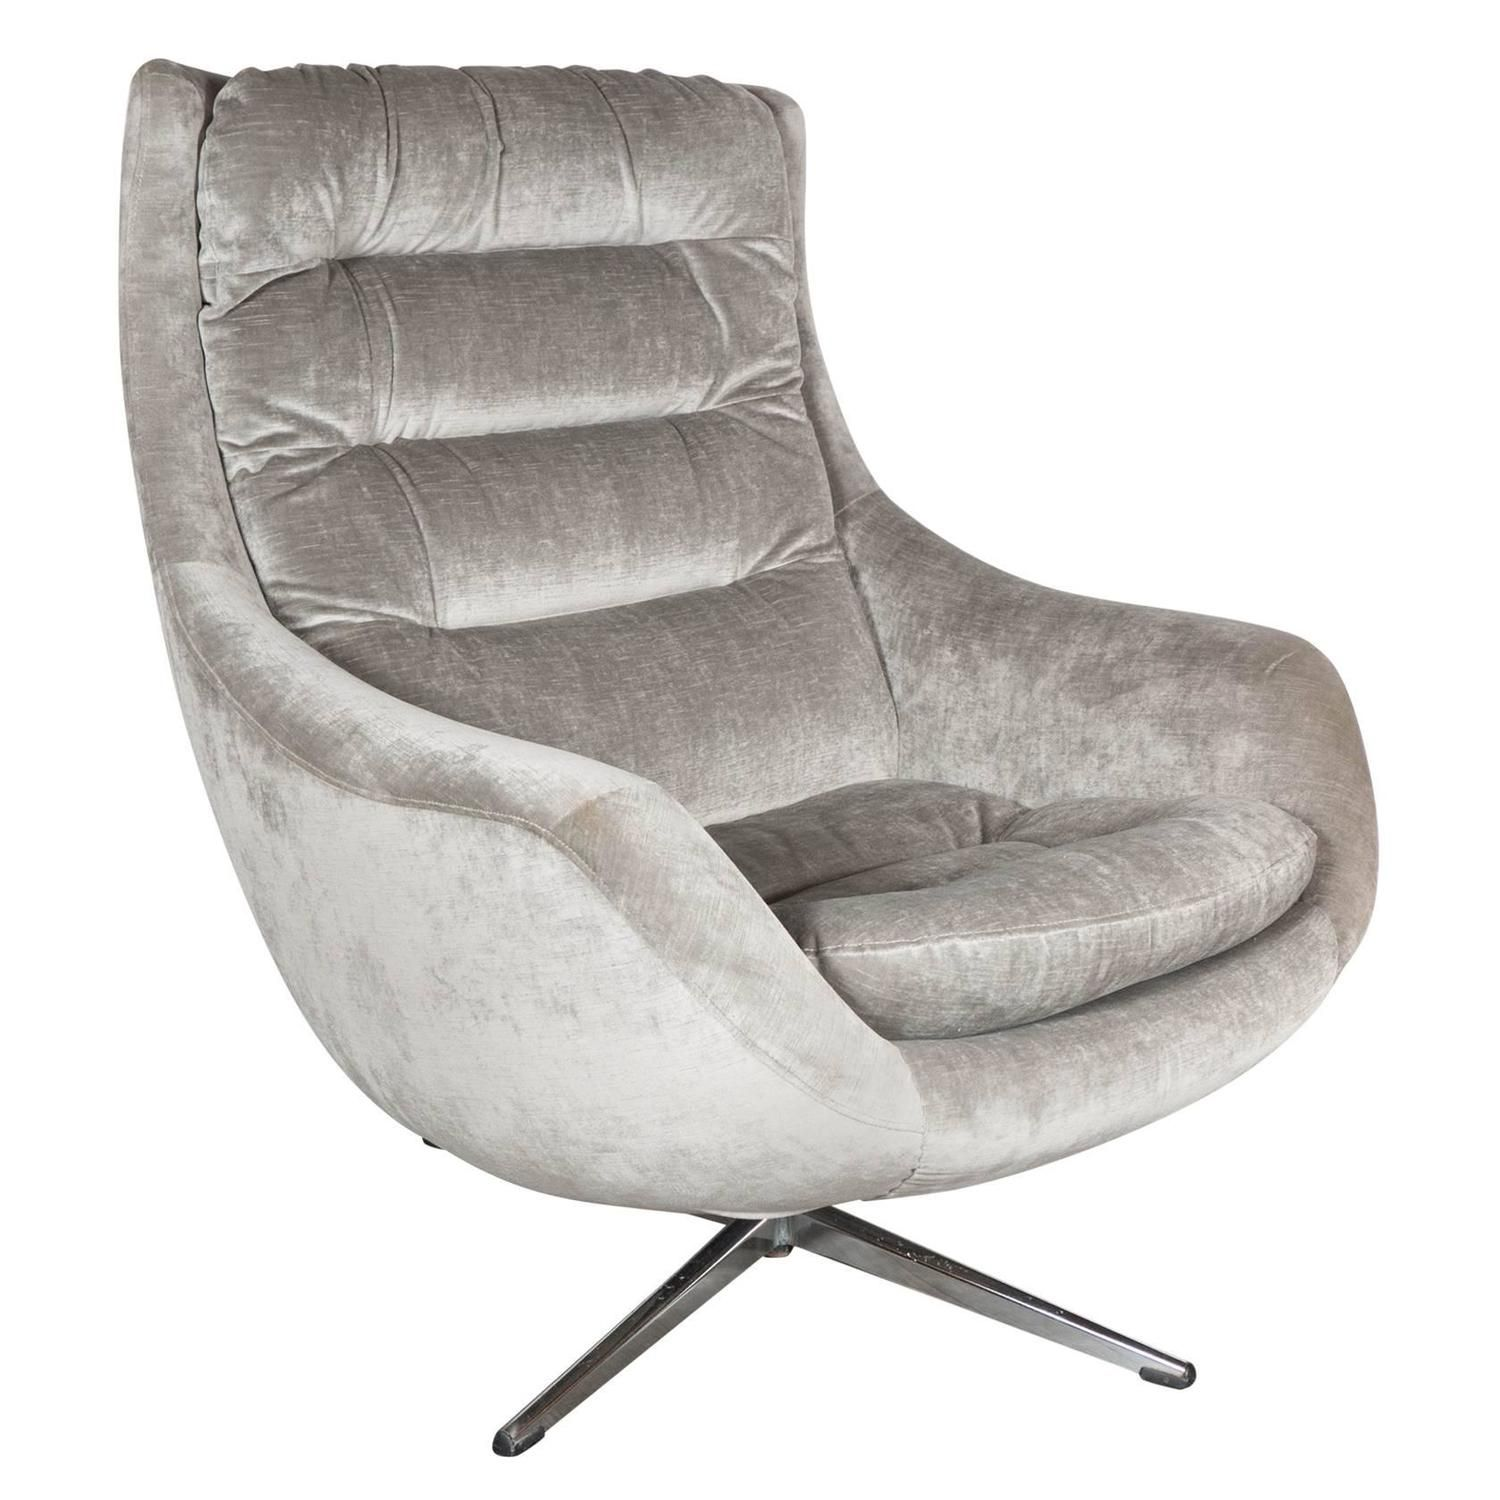 Mid Century Modernist Curved High Back Swivel Chair In Platinum Velvet Curved Chair Swivel Chair Chair